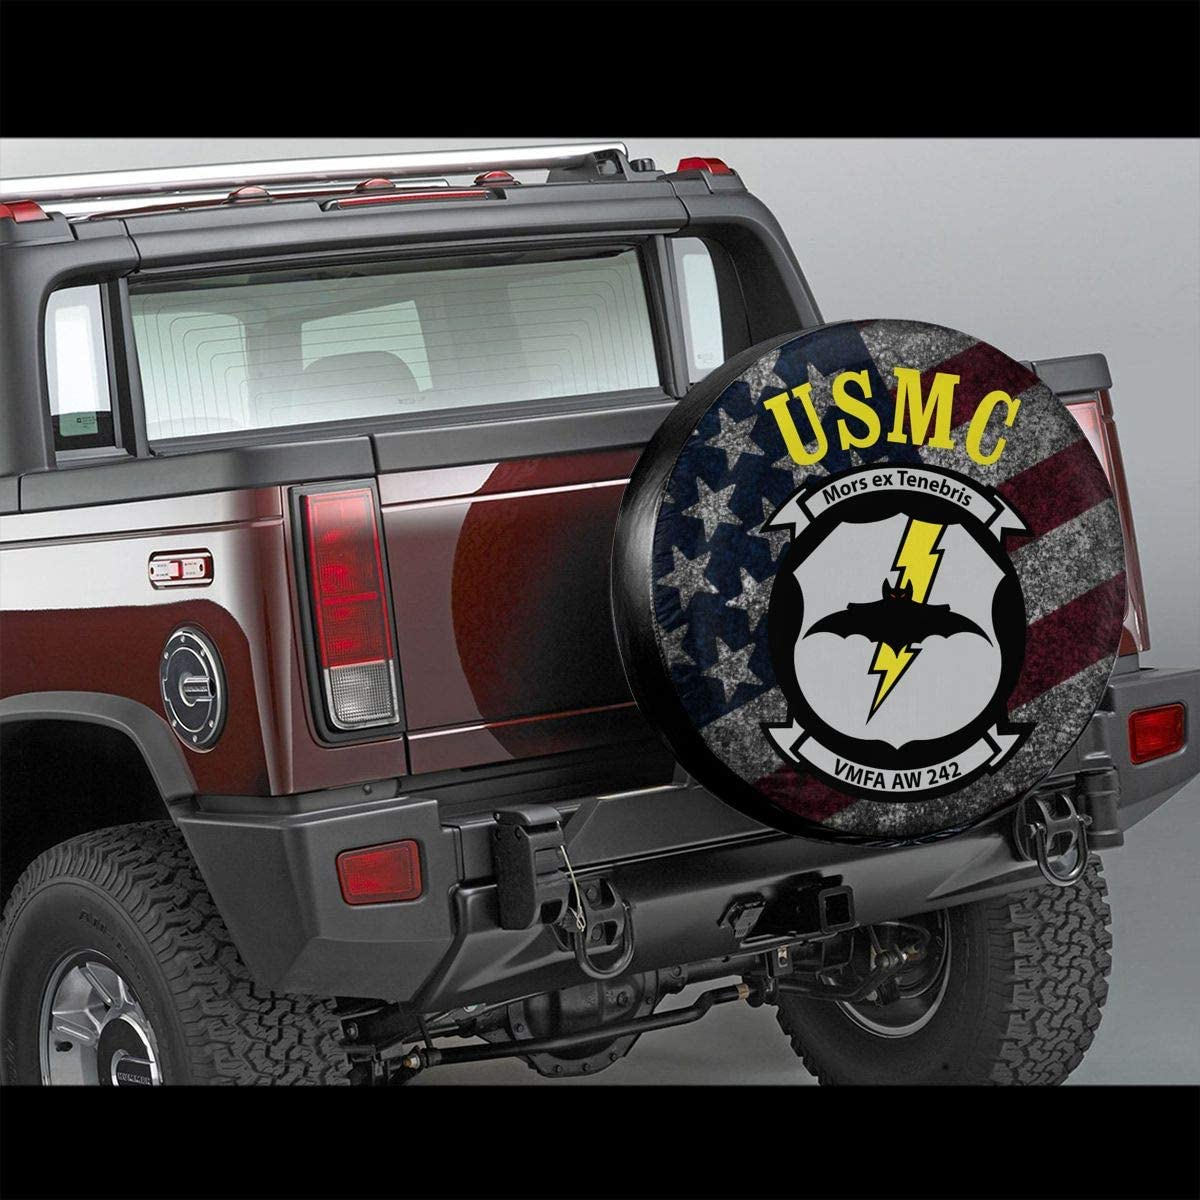 Kon KK Accessories USMC VMFA AW -242 Spare Tire Cover Waterproof Dust-Proof Universal Wheel Tire Covers Fit for Jeep Trailer RV SUV